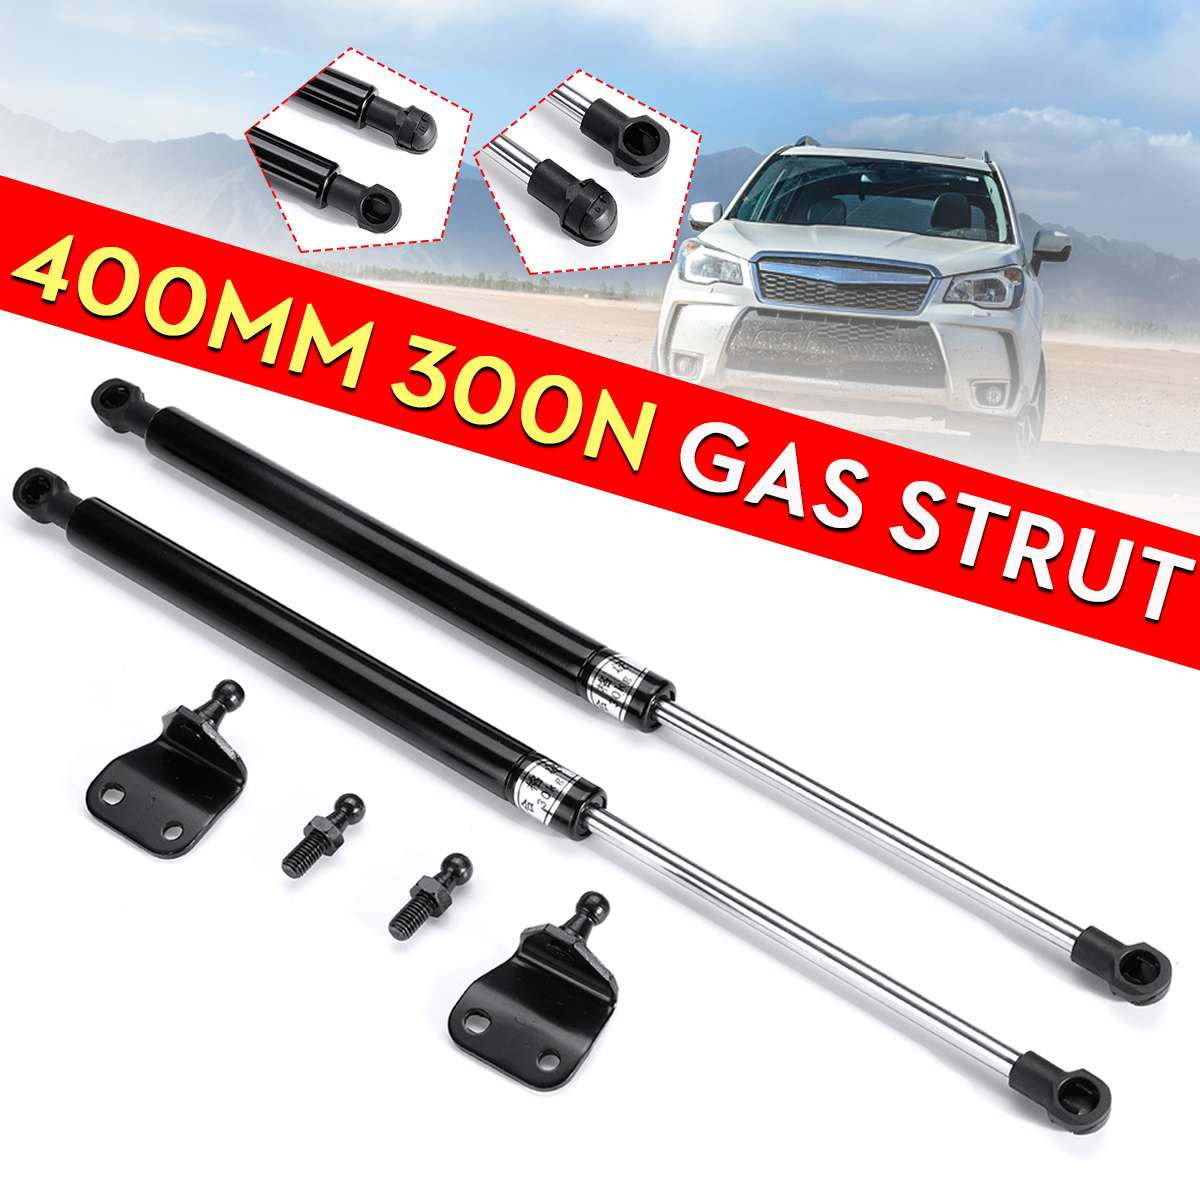 2X Universal 40cm 400mm 300N Car Struts Front Cover Bonnet Hood Rear Trunk Tailgate Boot Shock Lift Strut Support Bar Gas Spring